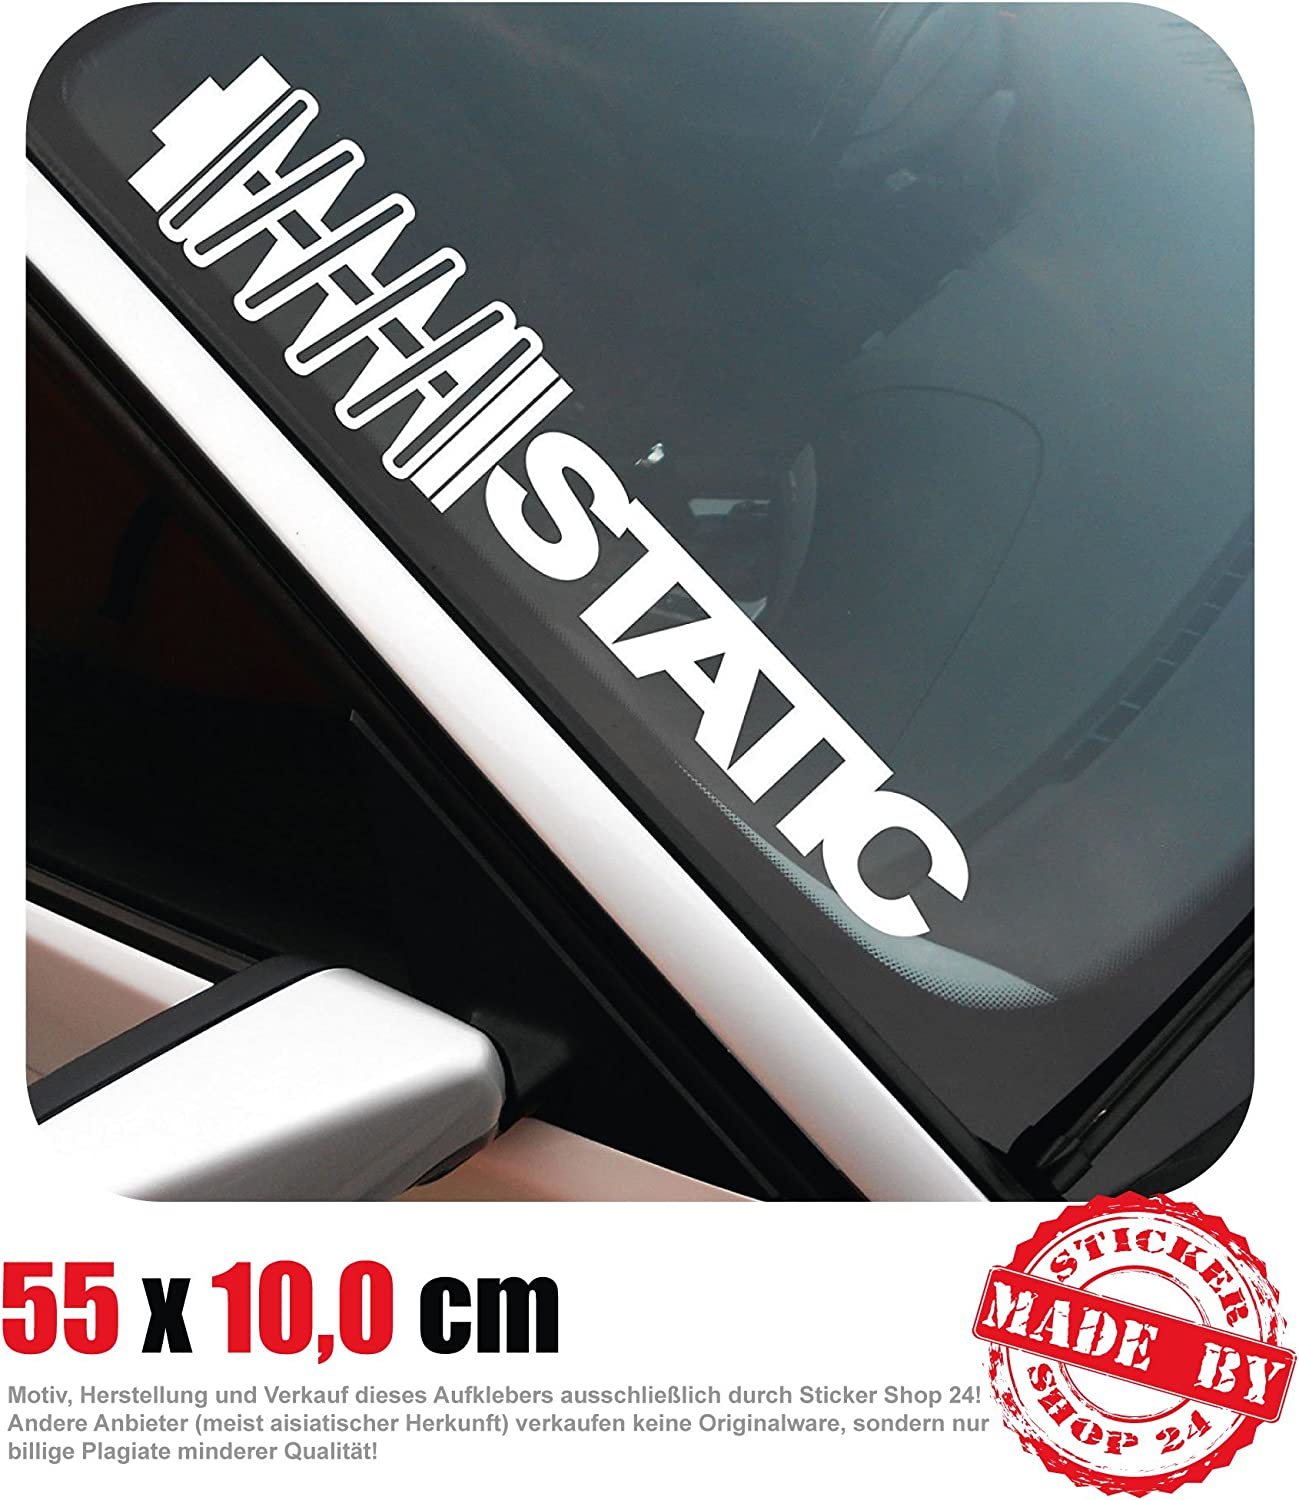 Static Front Window Sticker 55 Cm X 10 Cm Car Sticker Oem Tuning Decal 30 Colour Selection Auto